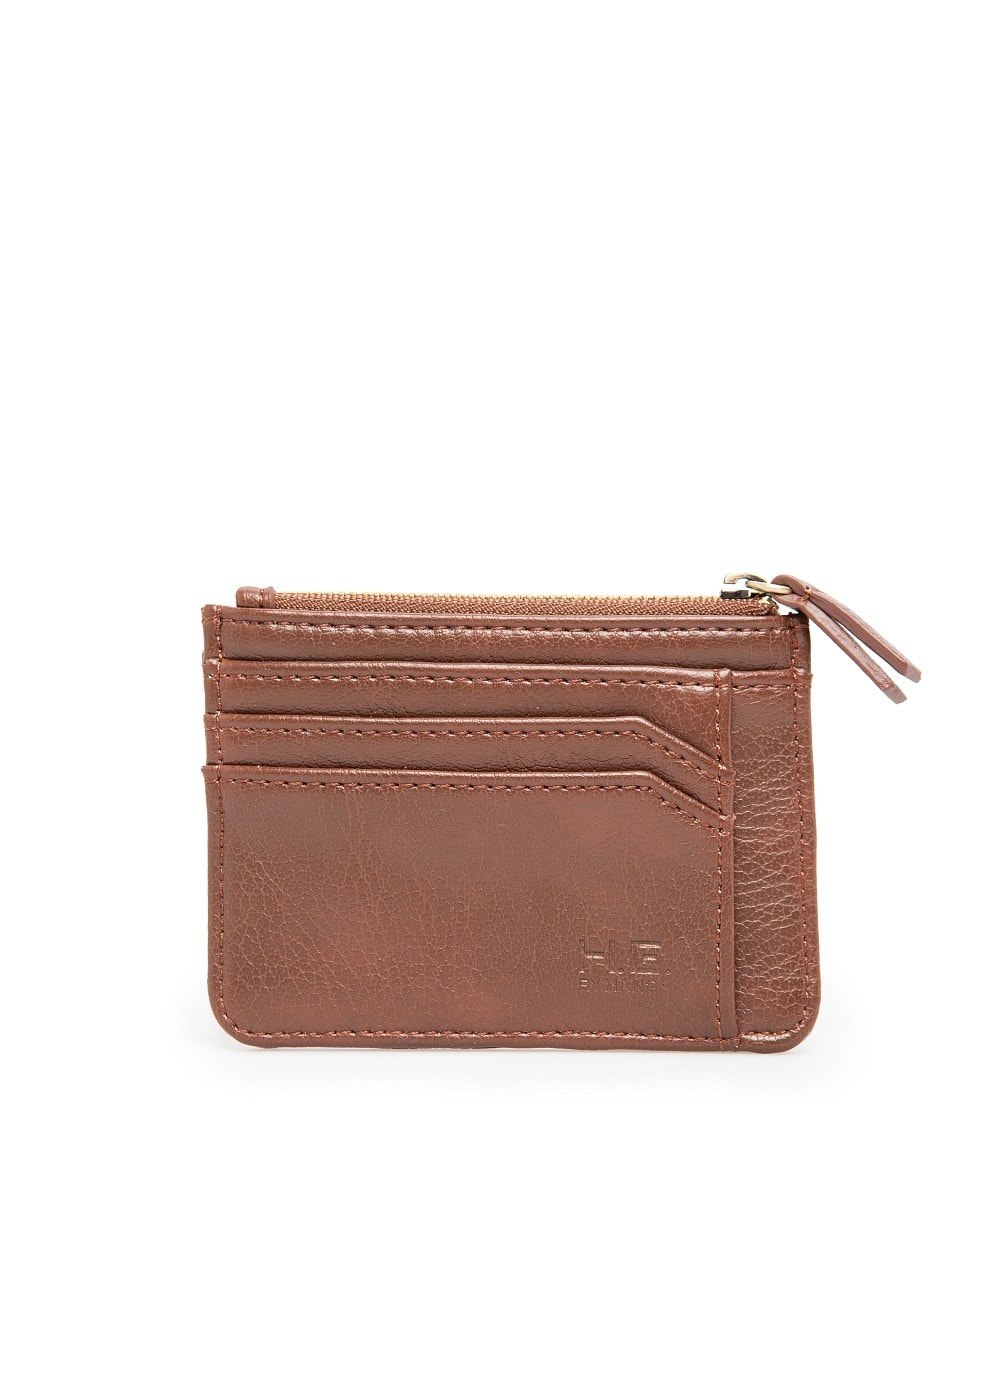 Pocket cardholder